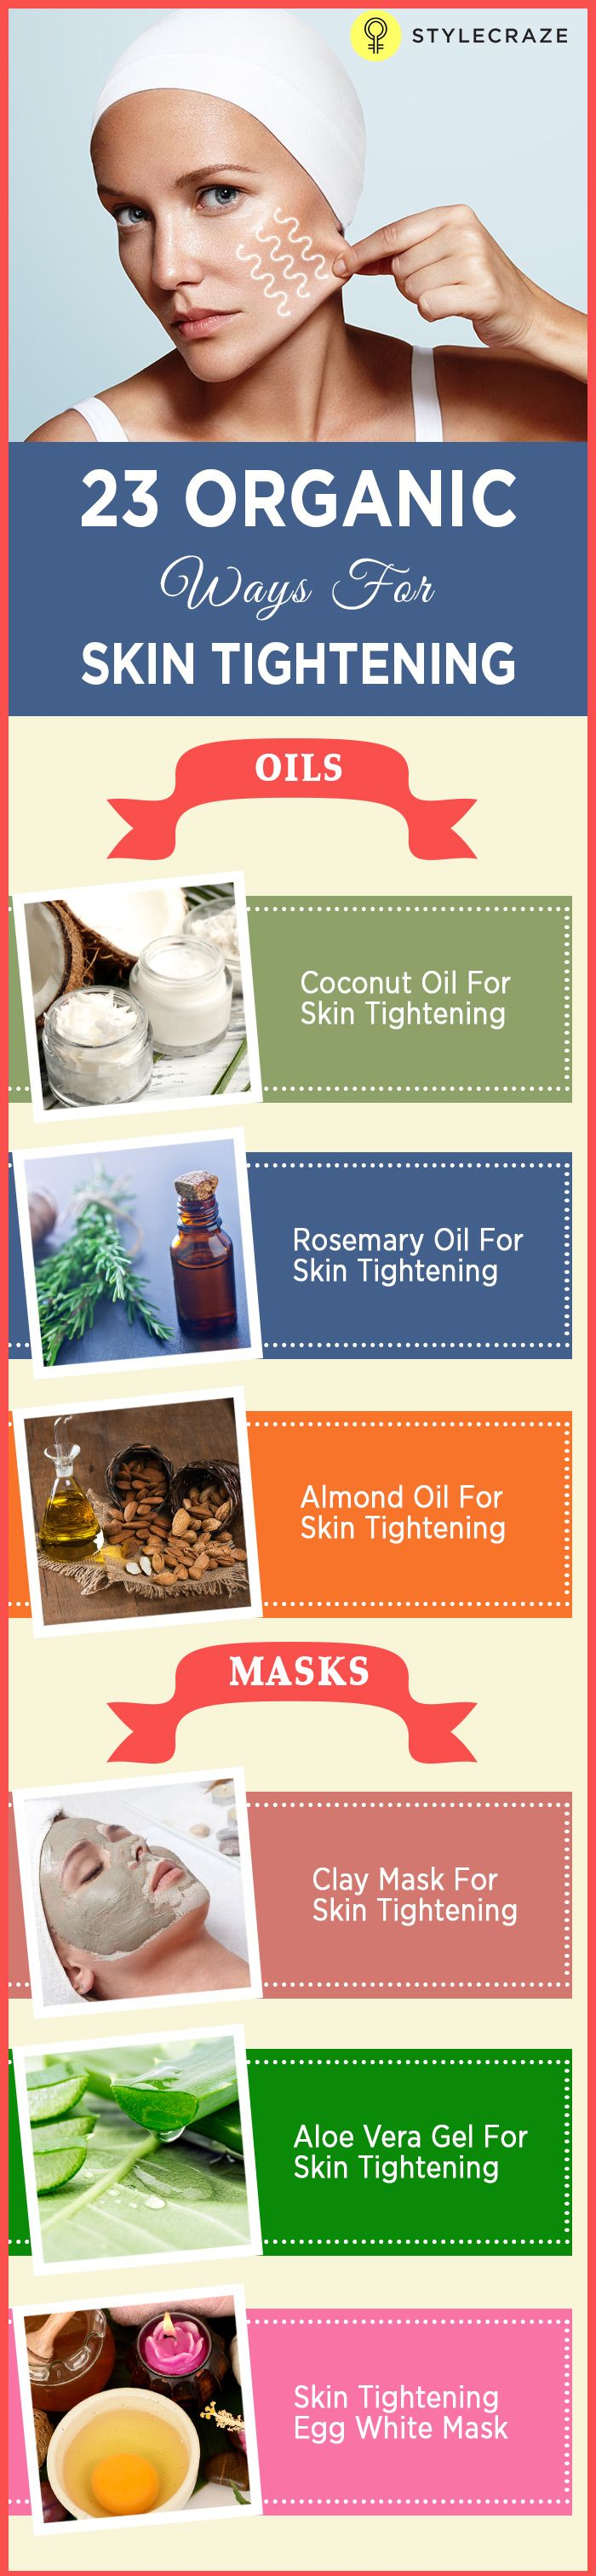 Both intrinsic and extrinsic factors play a role in causing your skin to become loose and saggy (1, 2, 3). Let us take a look at the home remedies that you can use to firm up and tighten your skin.